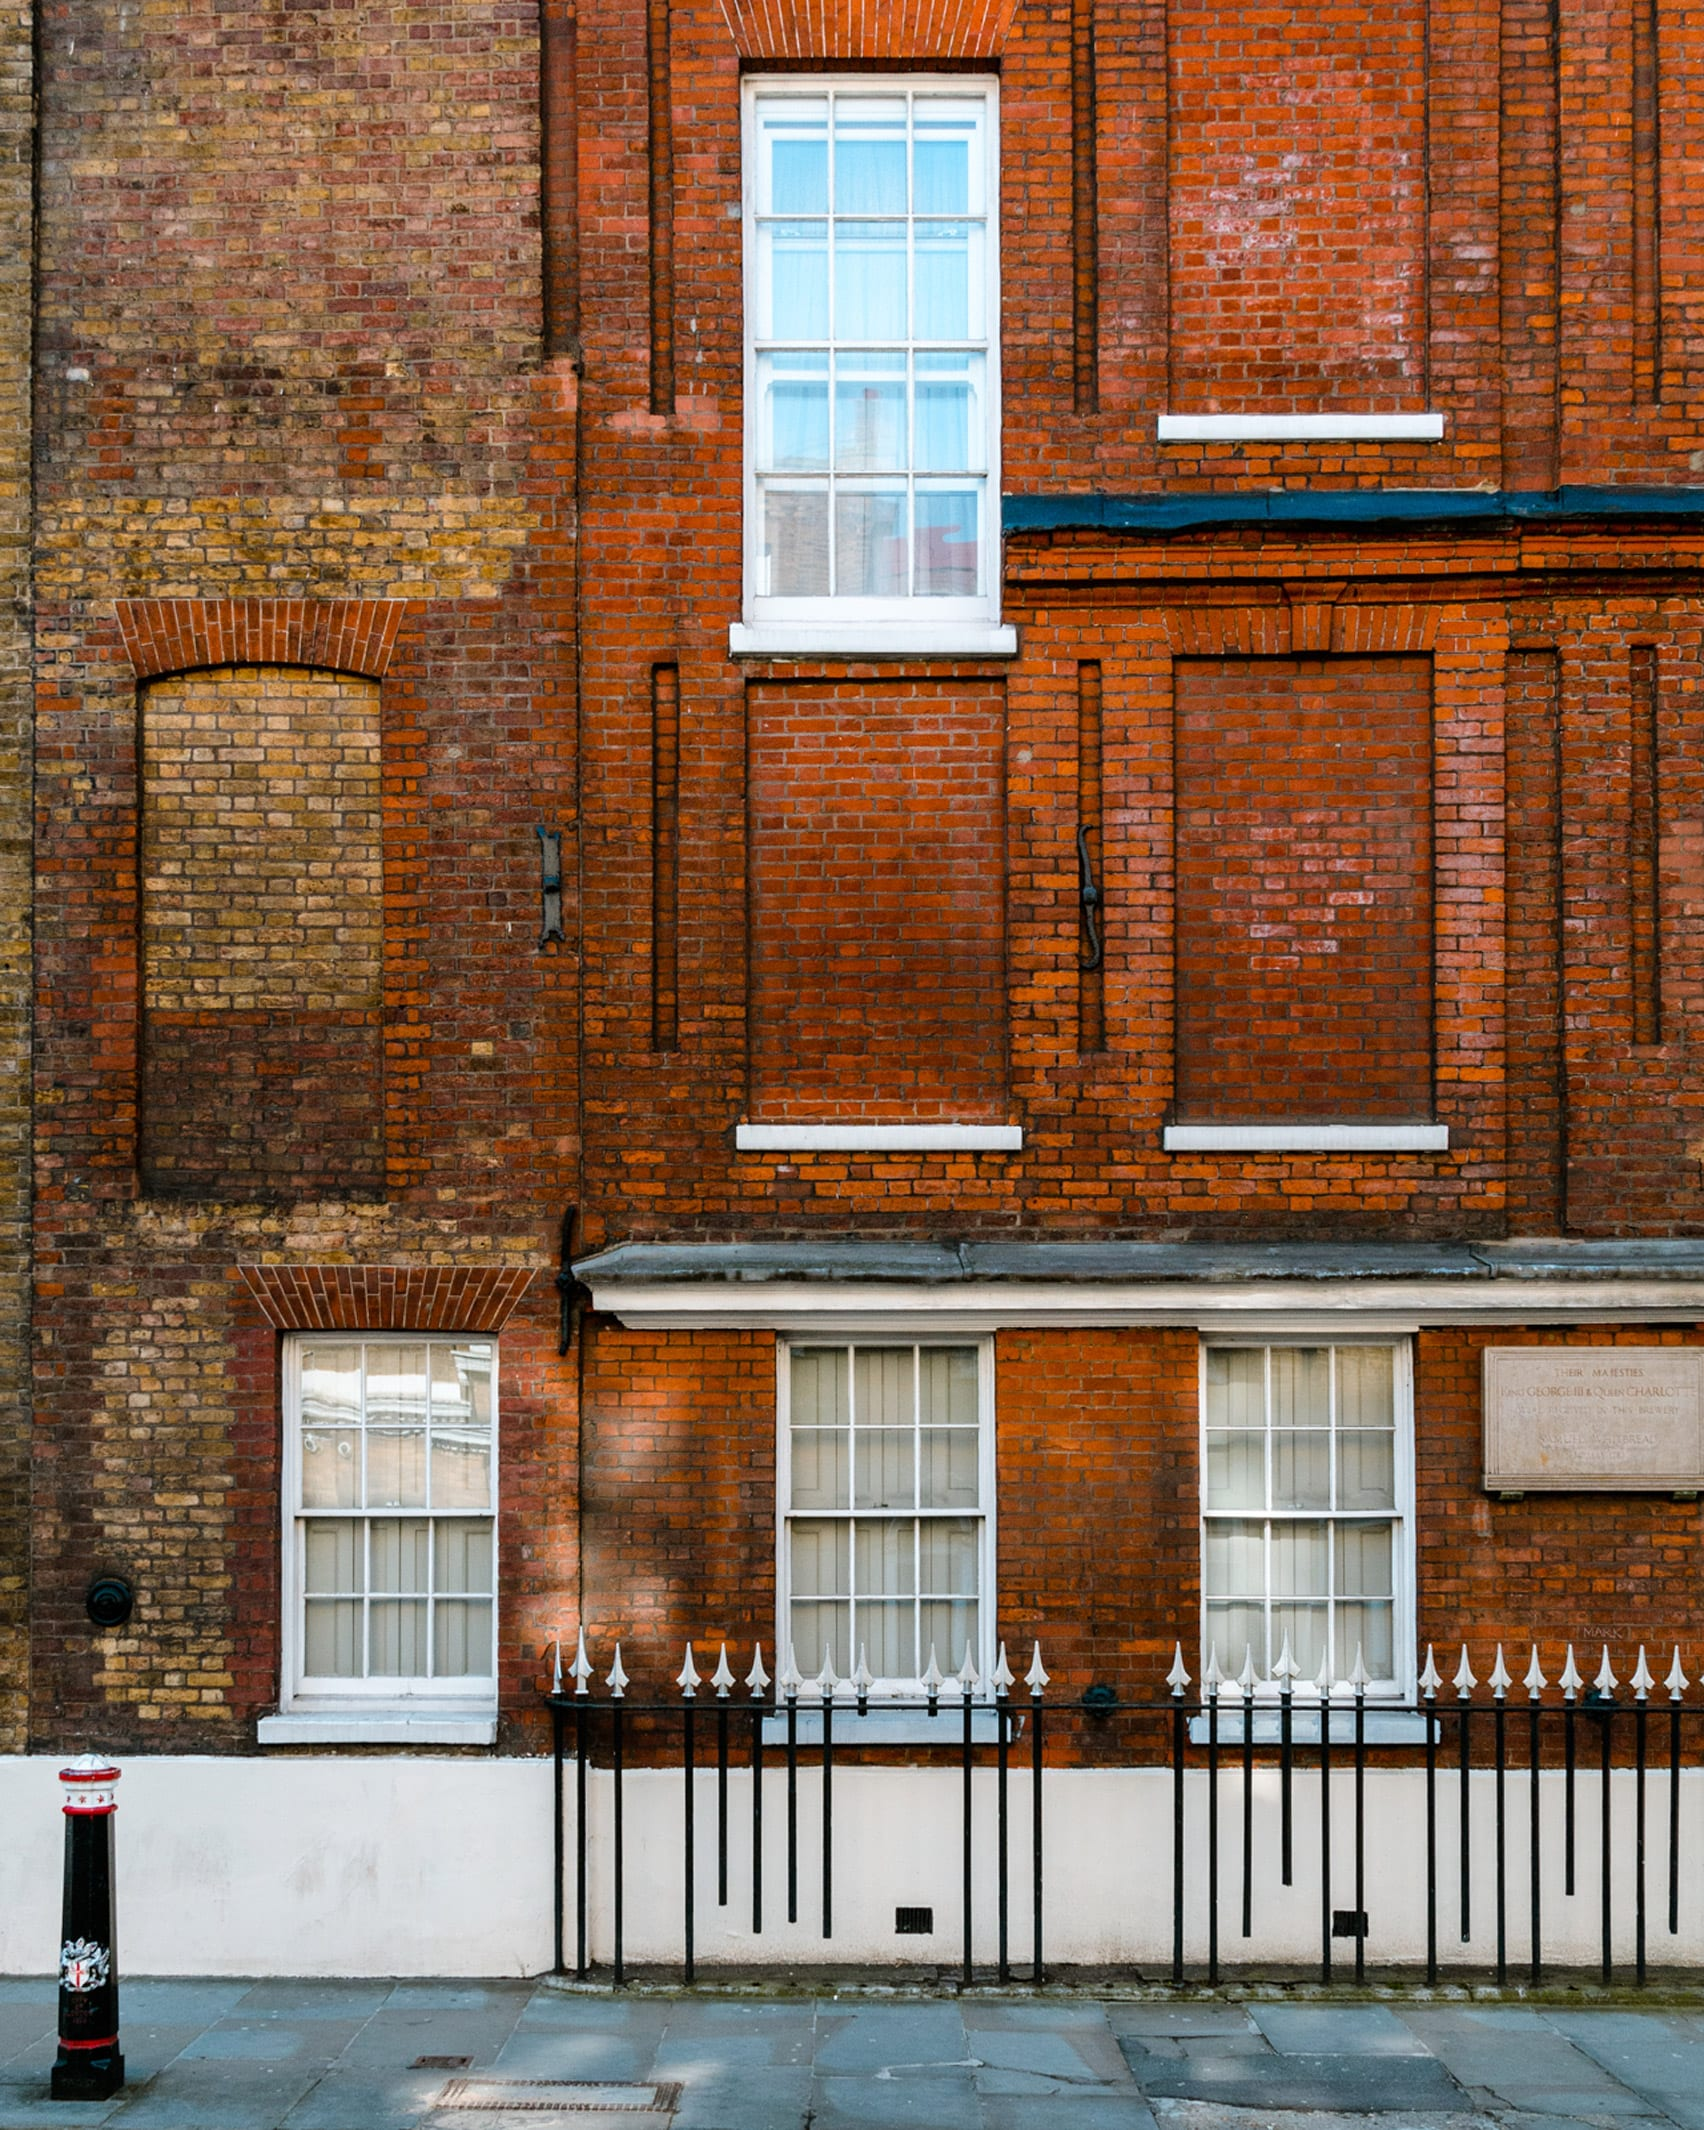 A dwelling in London featured in Daylight Robbery